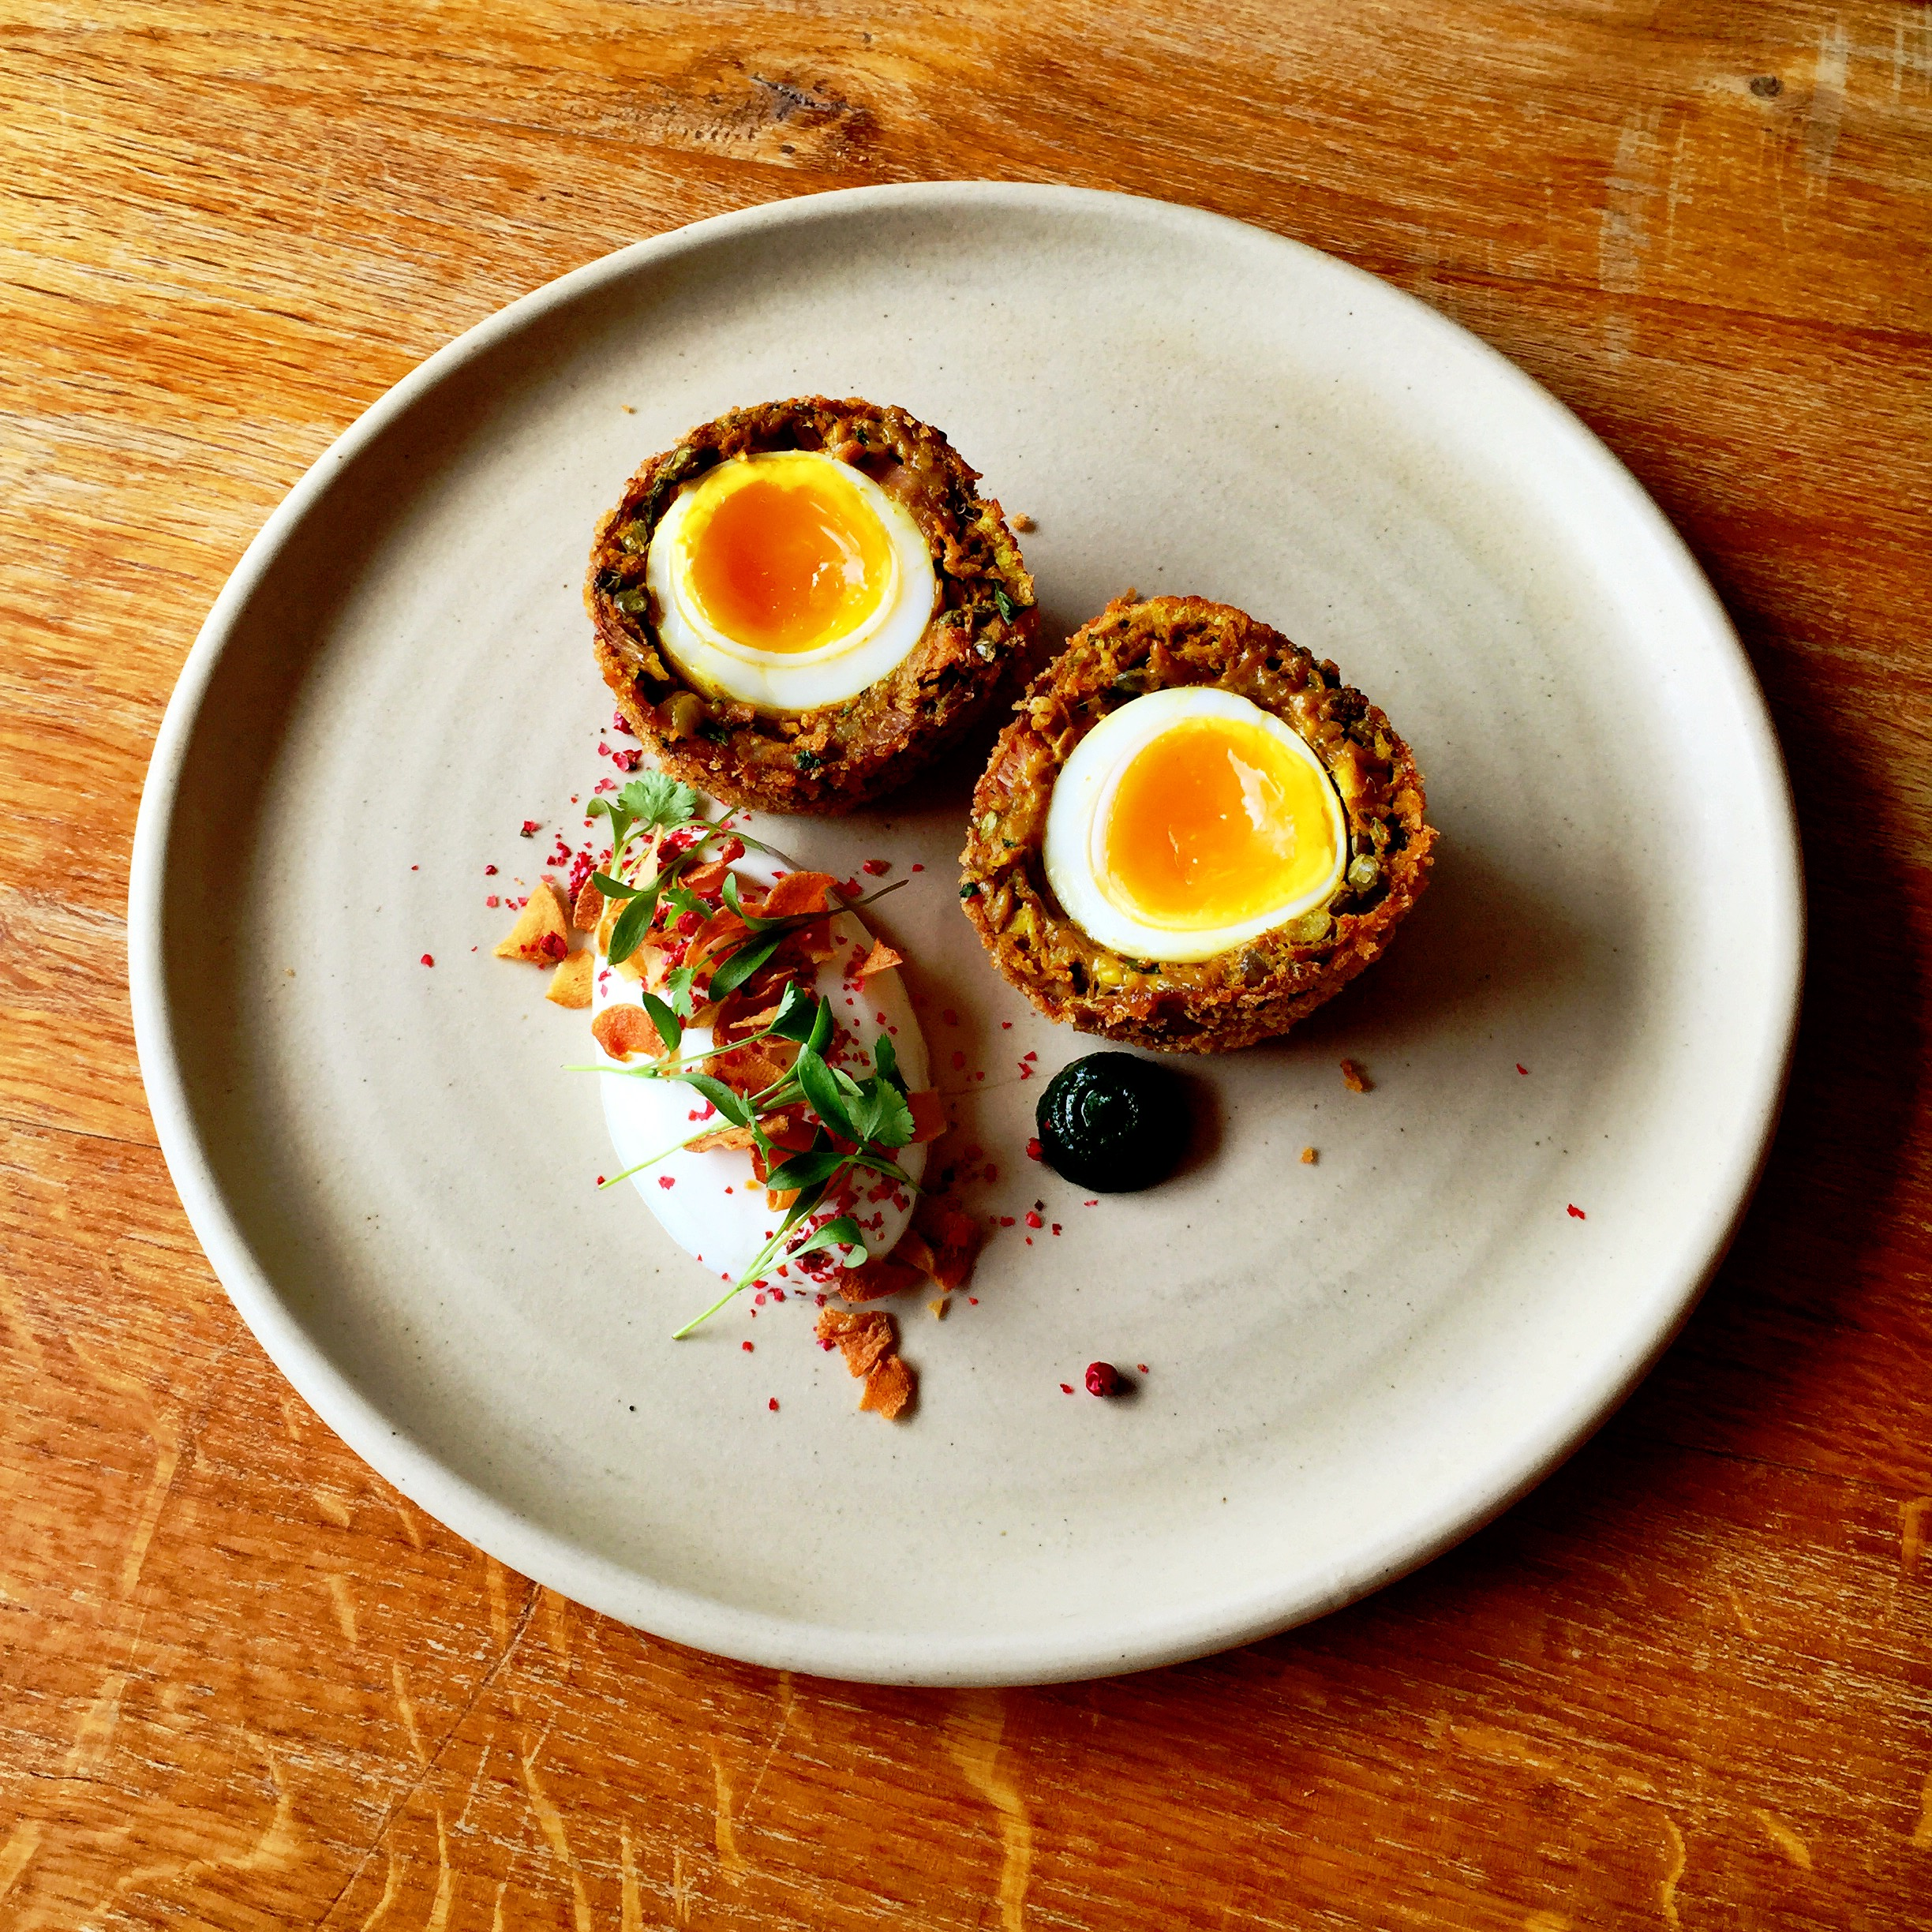 This week high rise City neighbours Sushisamba and Duck & Waffle have each created dishes to help benefit relief efforts in Nepal.